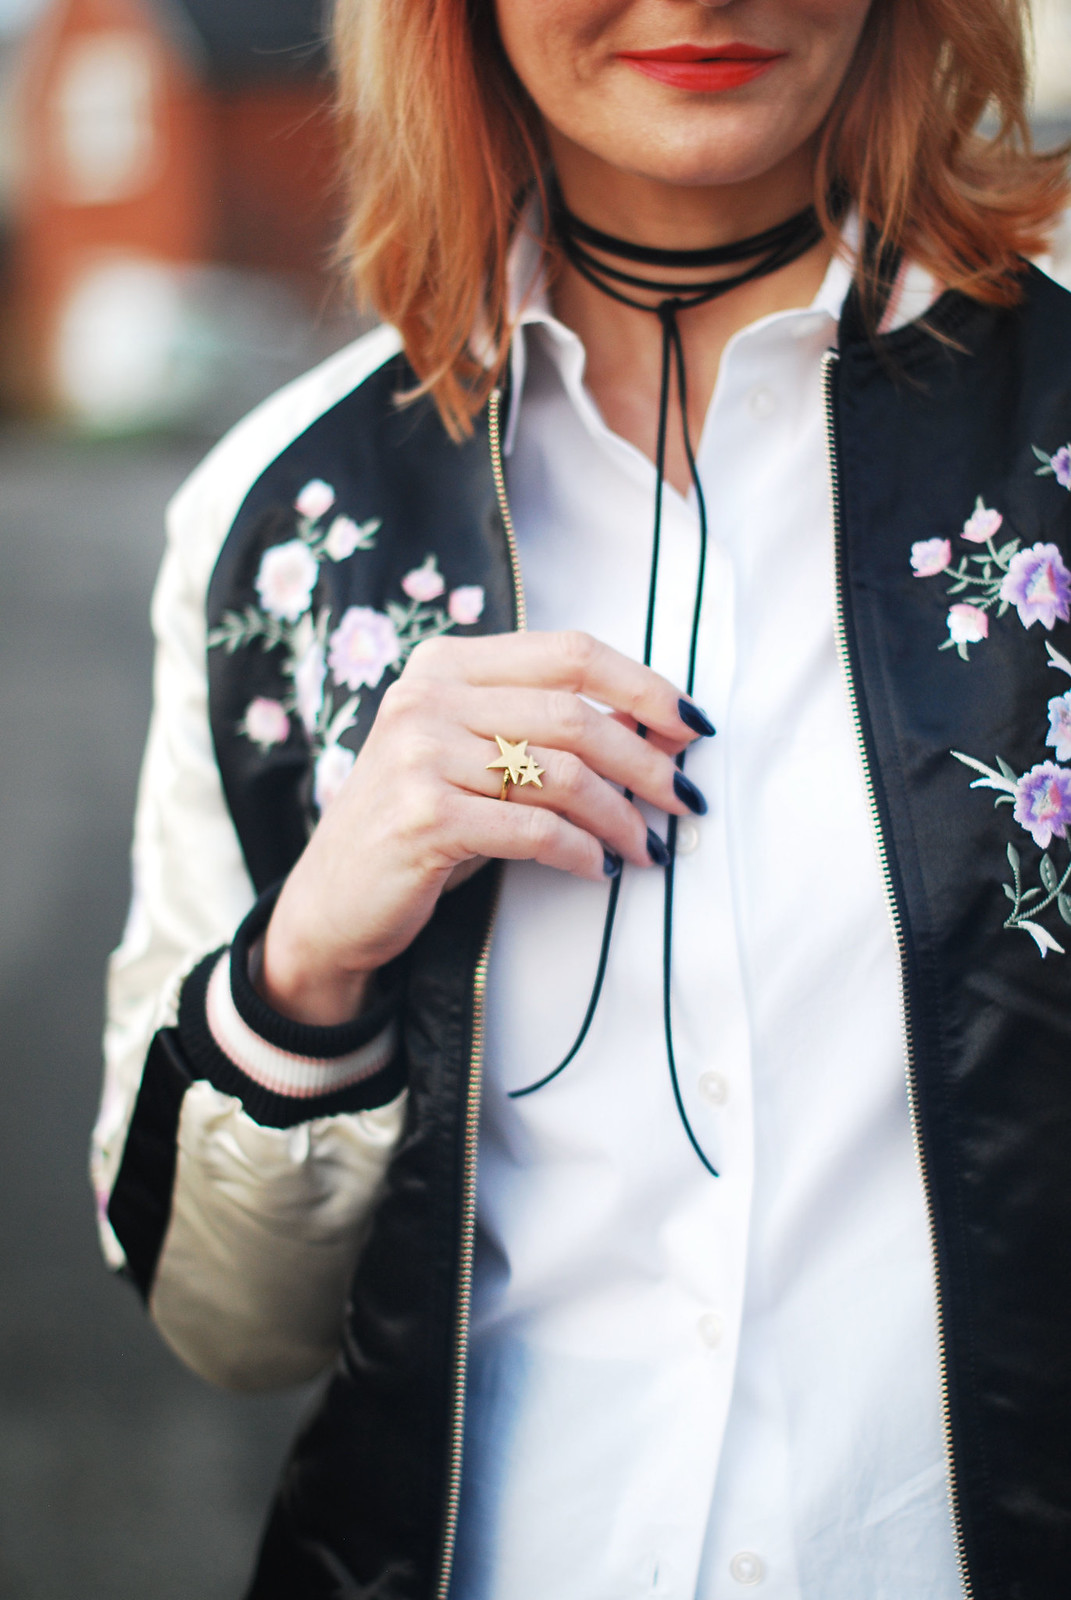 Smart casual weekend wear \ floral embroidered bomber jacket \ emerald green peg leg trousers \ black block heel shoes \ white shirt \ black tie-up choker necklace | Not Dressed As Lamb, over 40 style